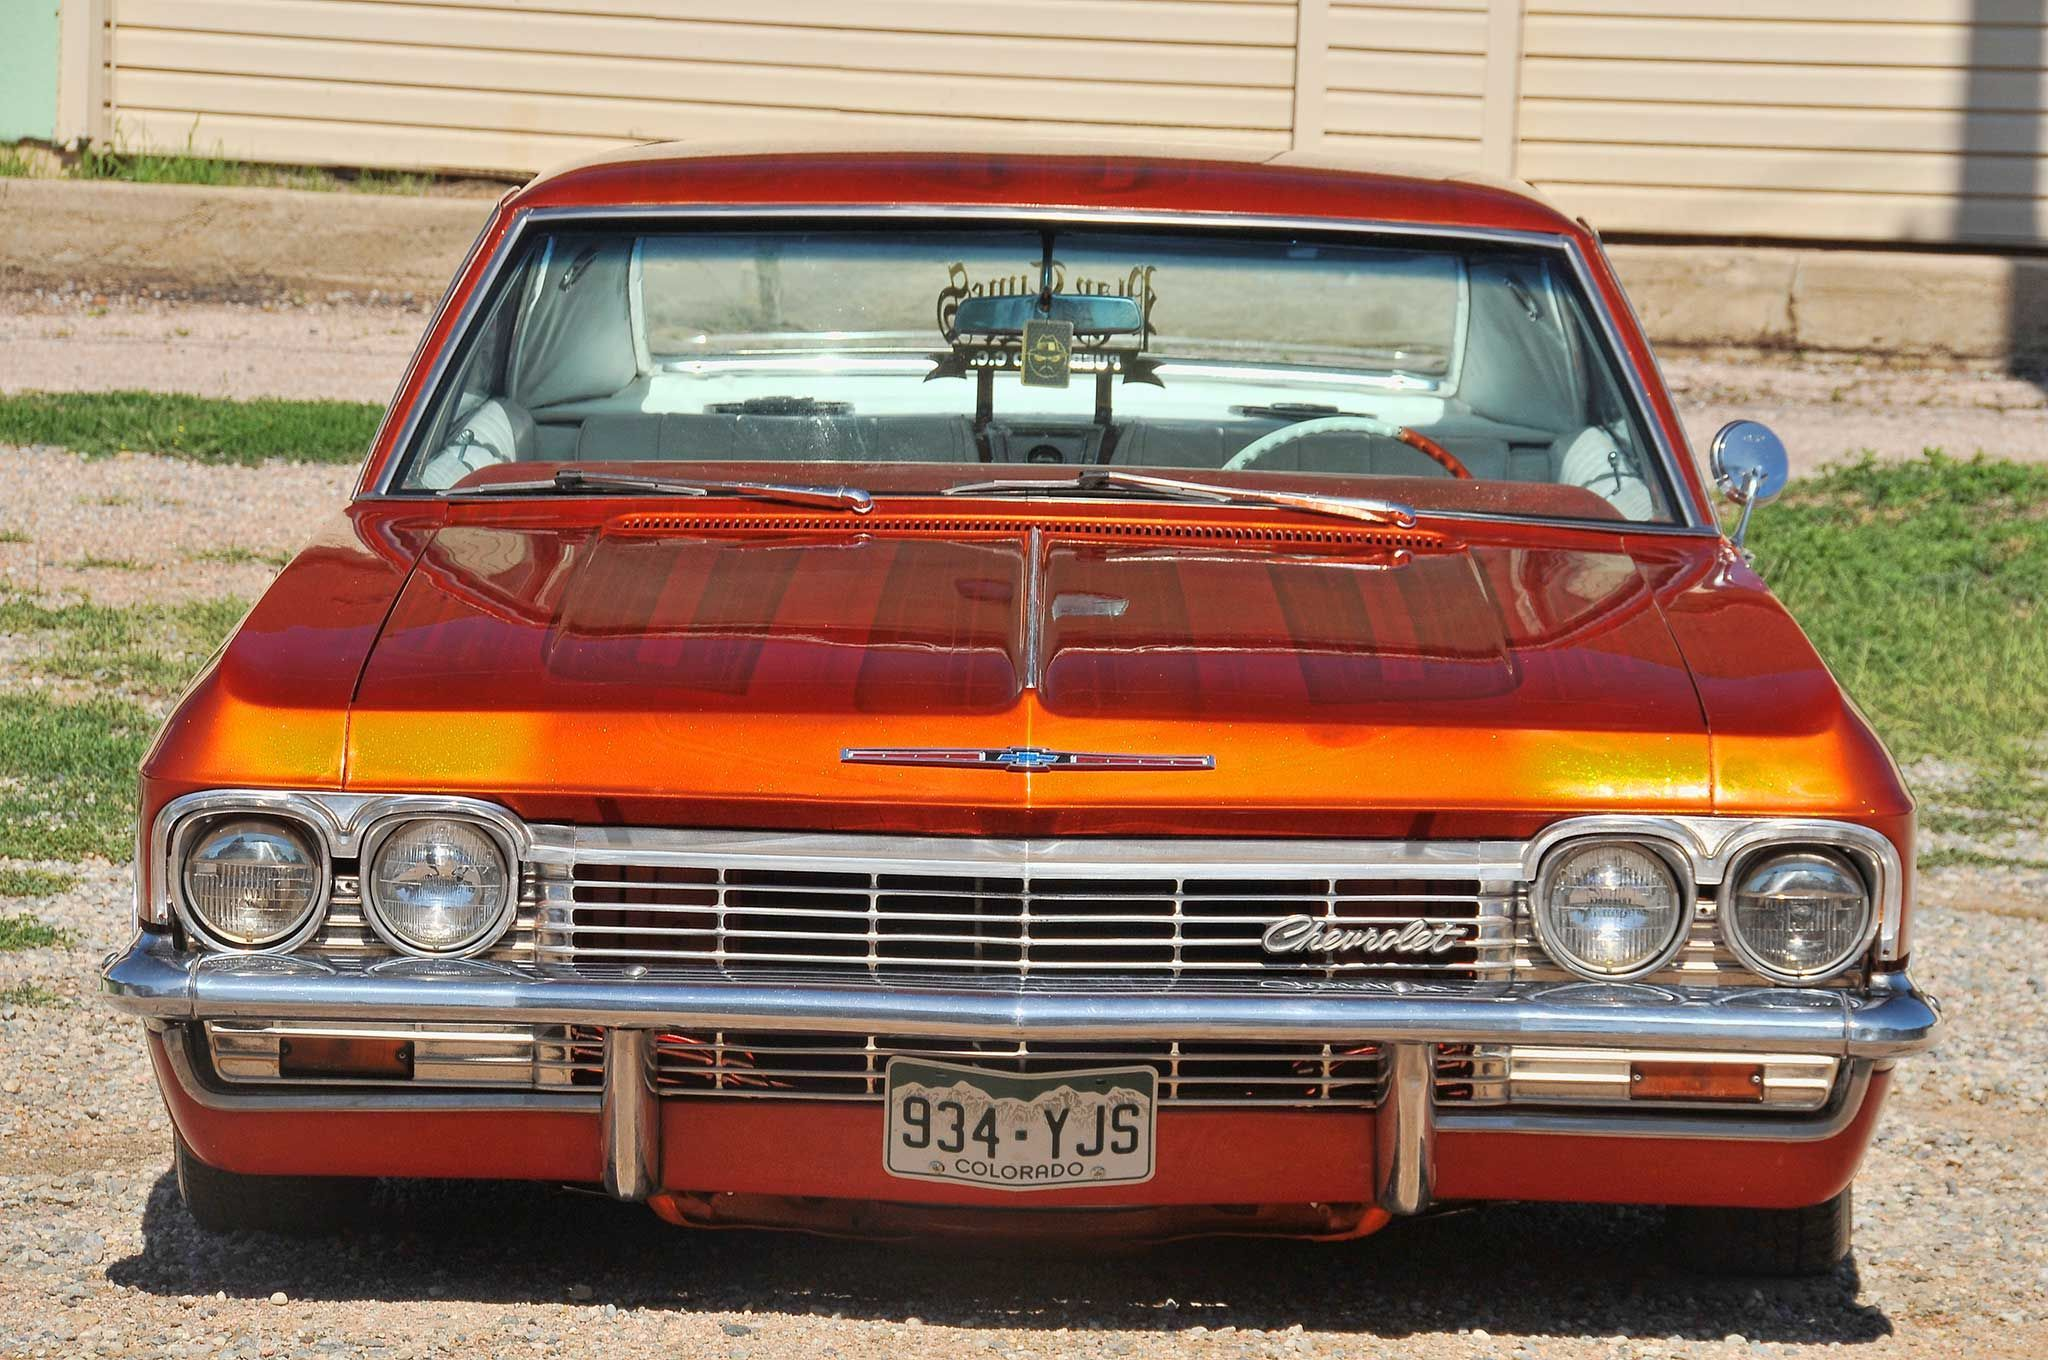 1964 Chevelle Wiring Diagram As Well Chevy Impala